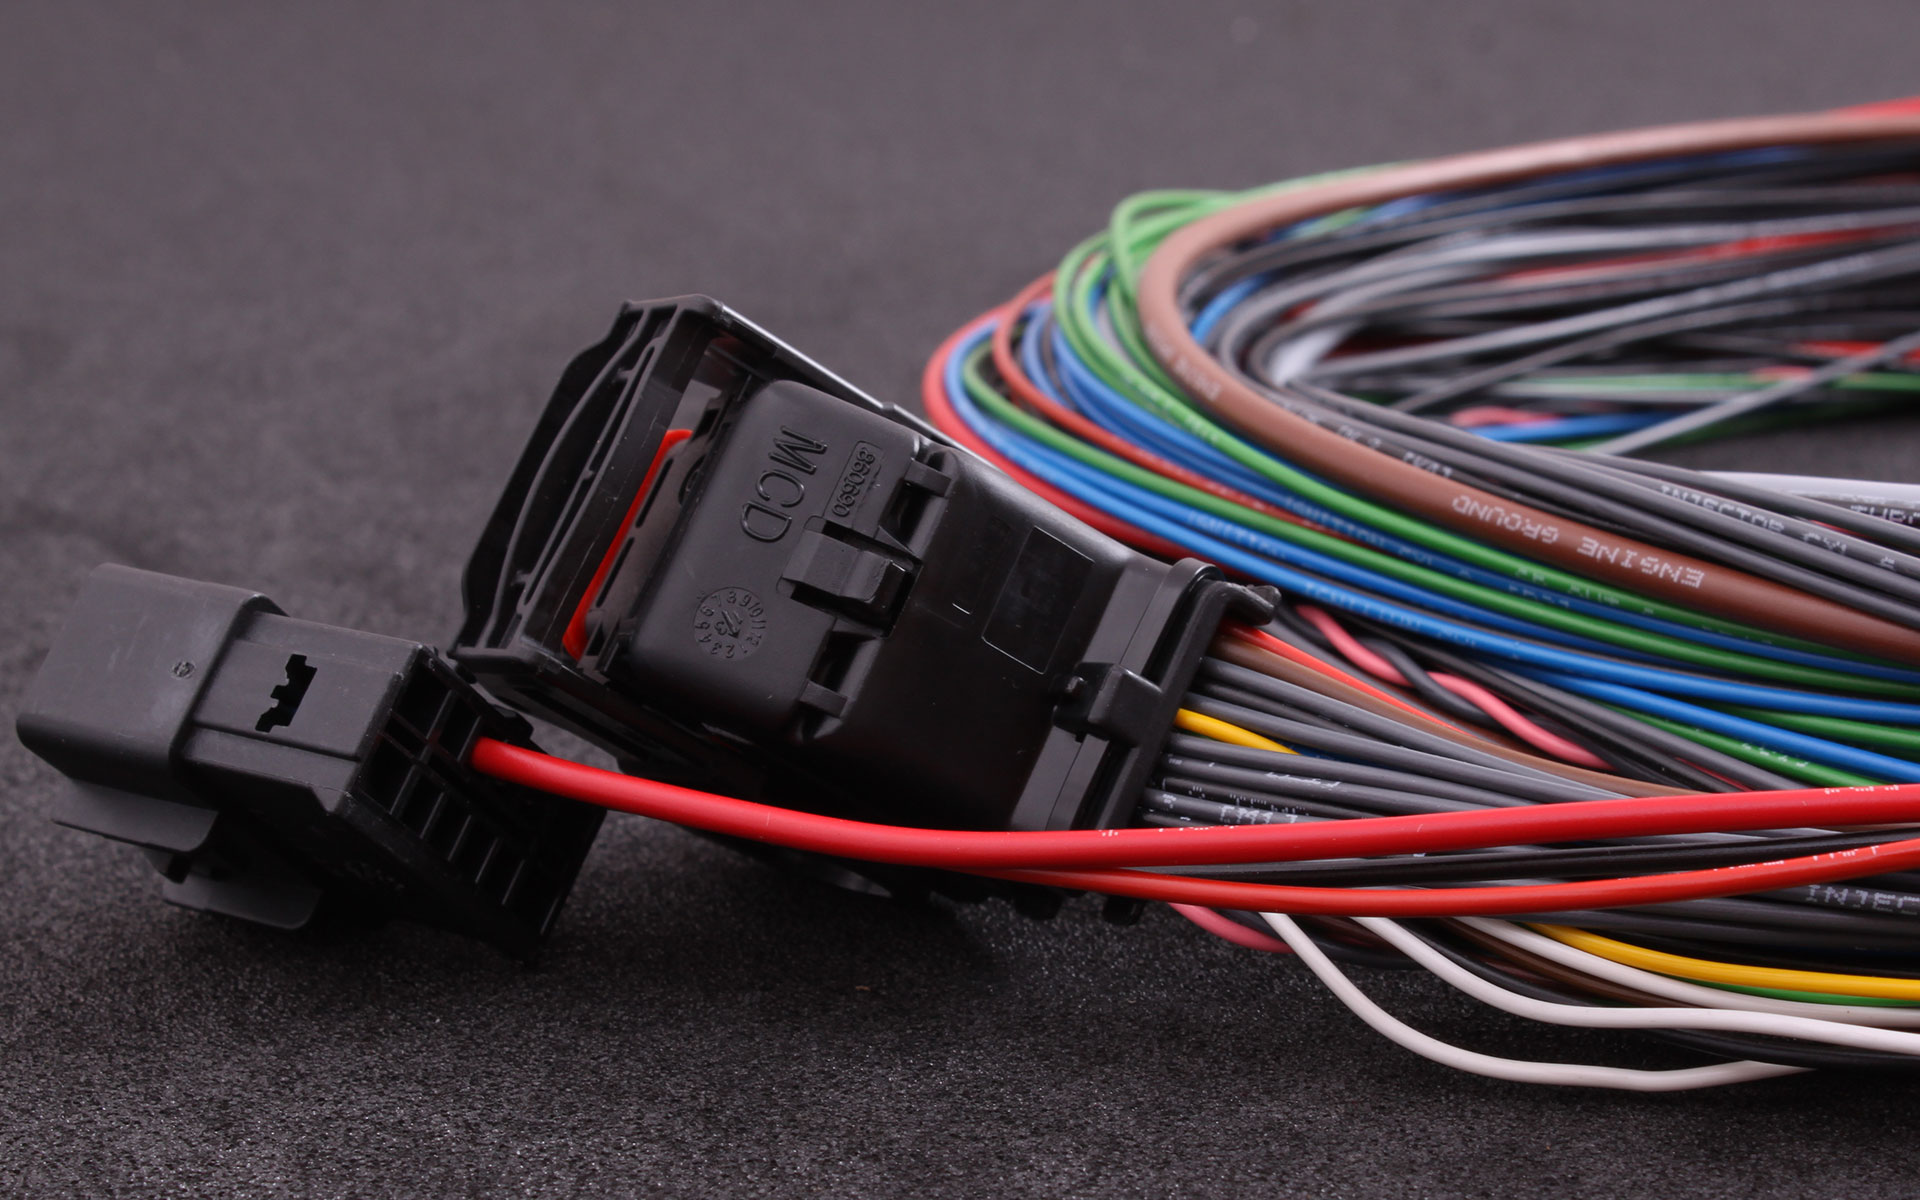 Maxxecu Pro Most Advanced And Professional Engine Management Race Car Wiring All Consists Of High Quality Automotive Thin Wall Cable Cables Are Labeled With Their Functions We Have Done Everything For A Stress